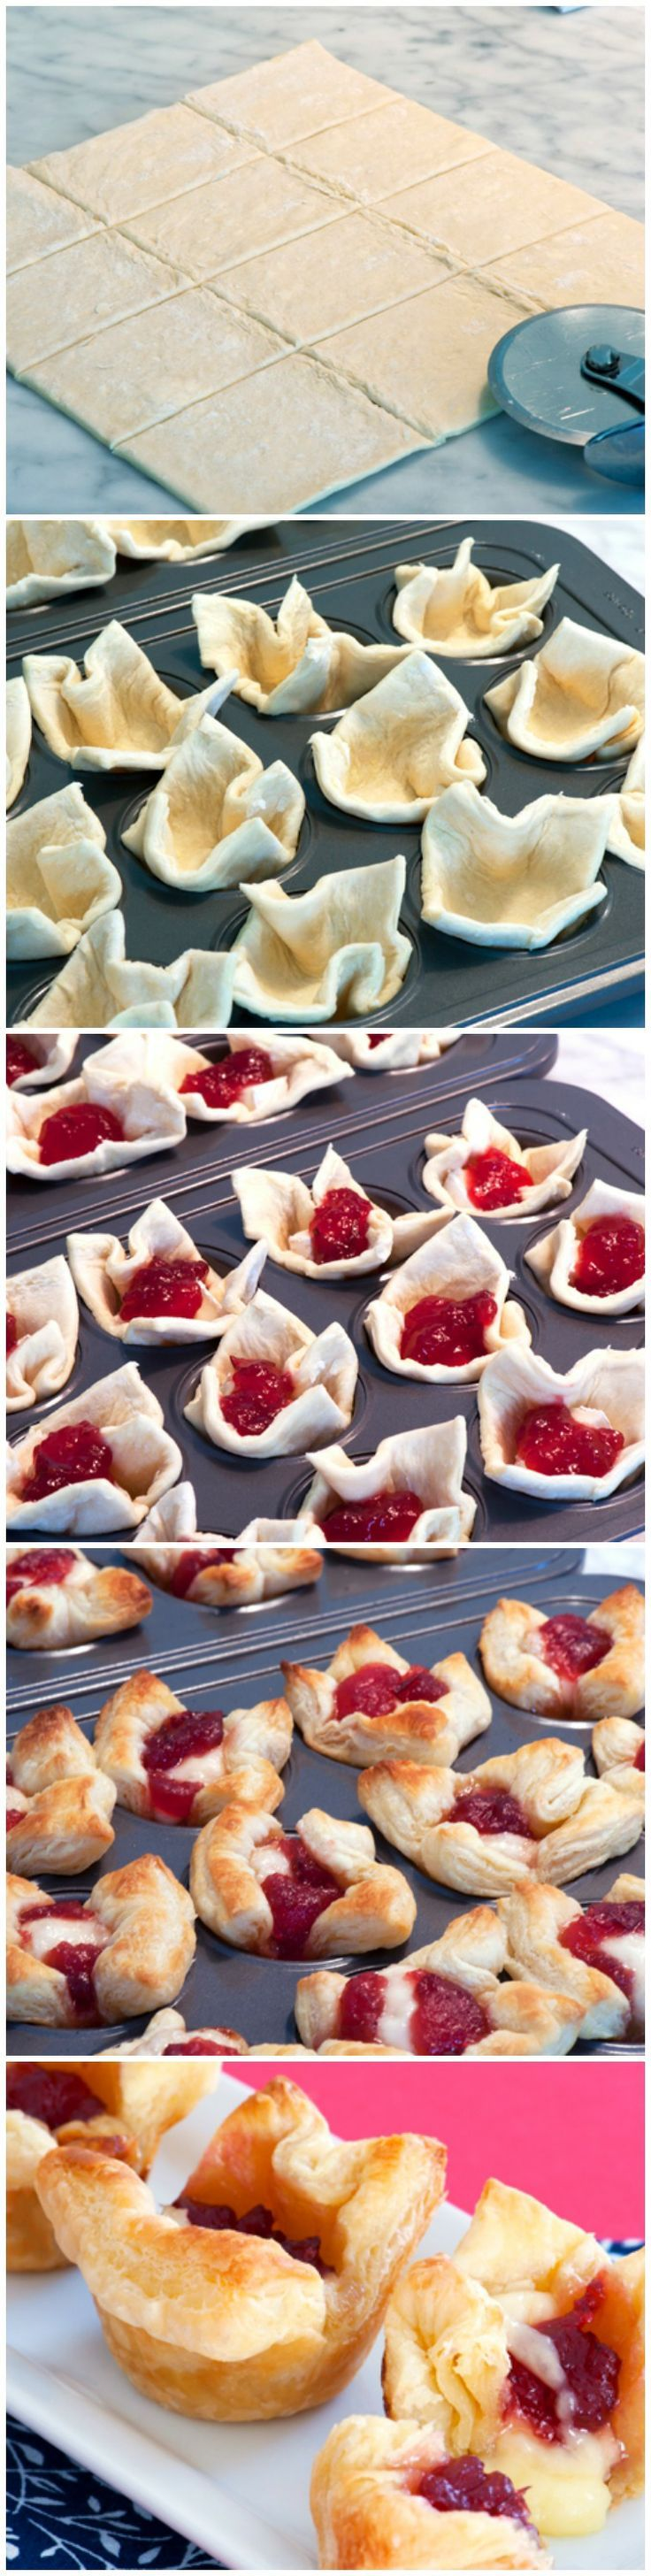 """Cranberry Brie Bites. 3/4"""" cubes of brie, 2 tsp of cranberry sauce. Bake at 375° for 10 min."""